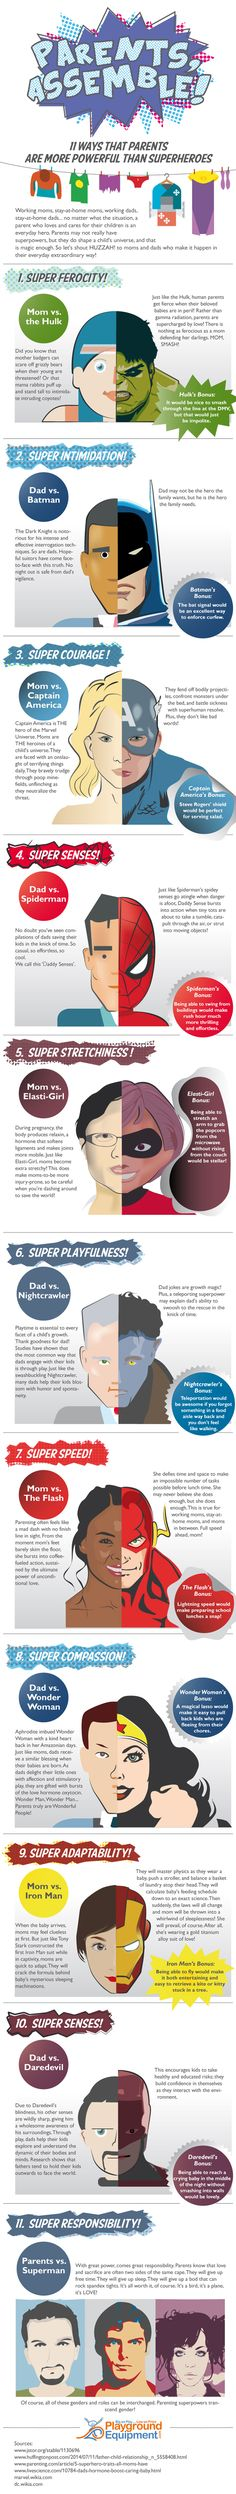 Parents, Assemble! 11 Ways That Parents Are More Powerful Than Superheroes #infographic #Parenting #SuperHeroes